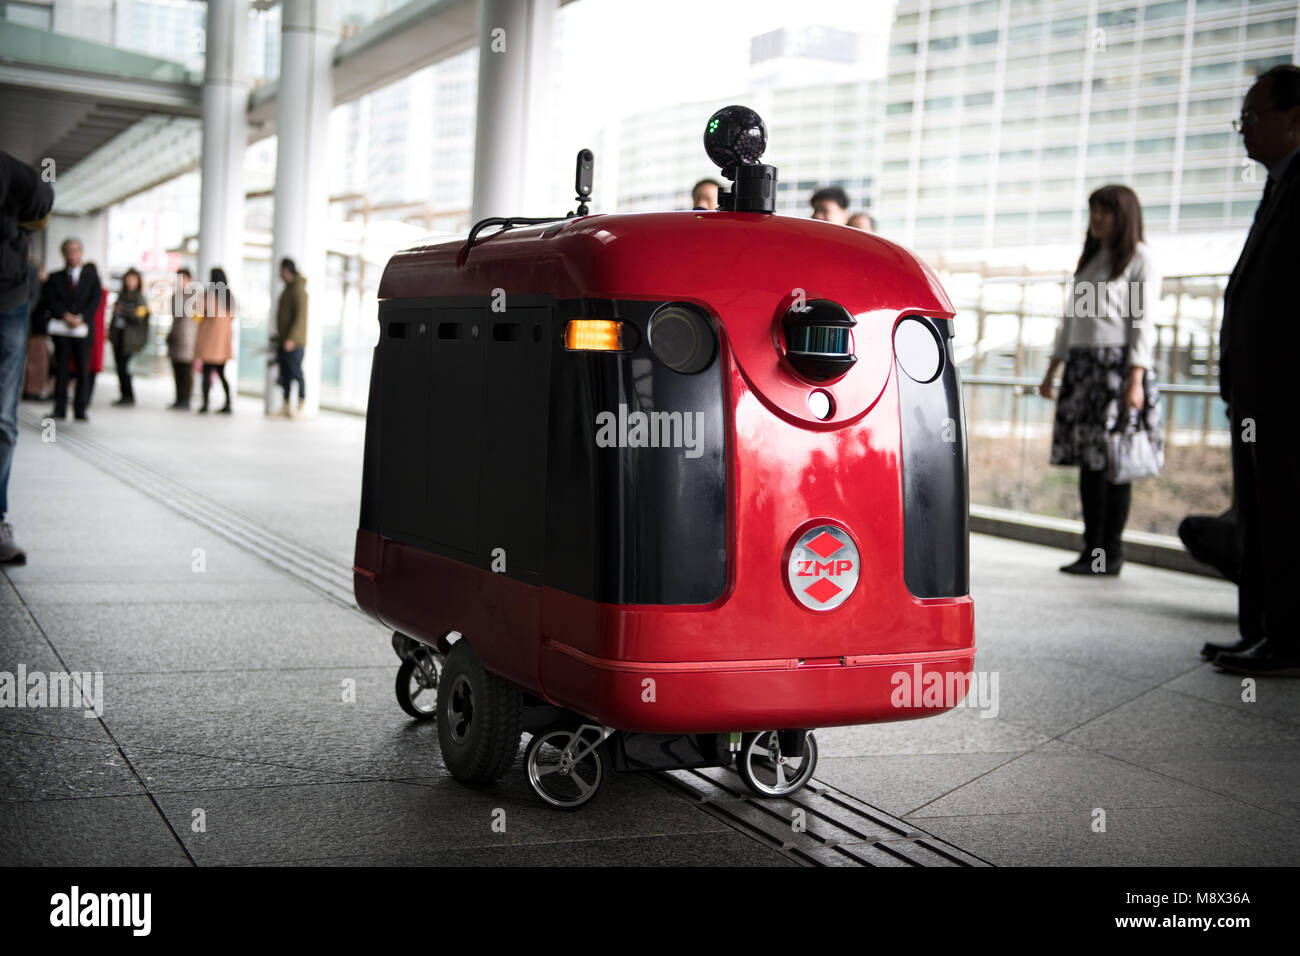 tokyo, japan - march 20: a prototype of a food delivery robot named